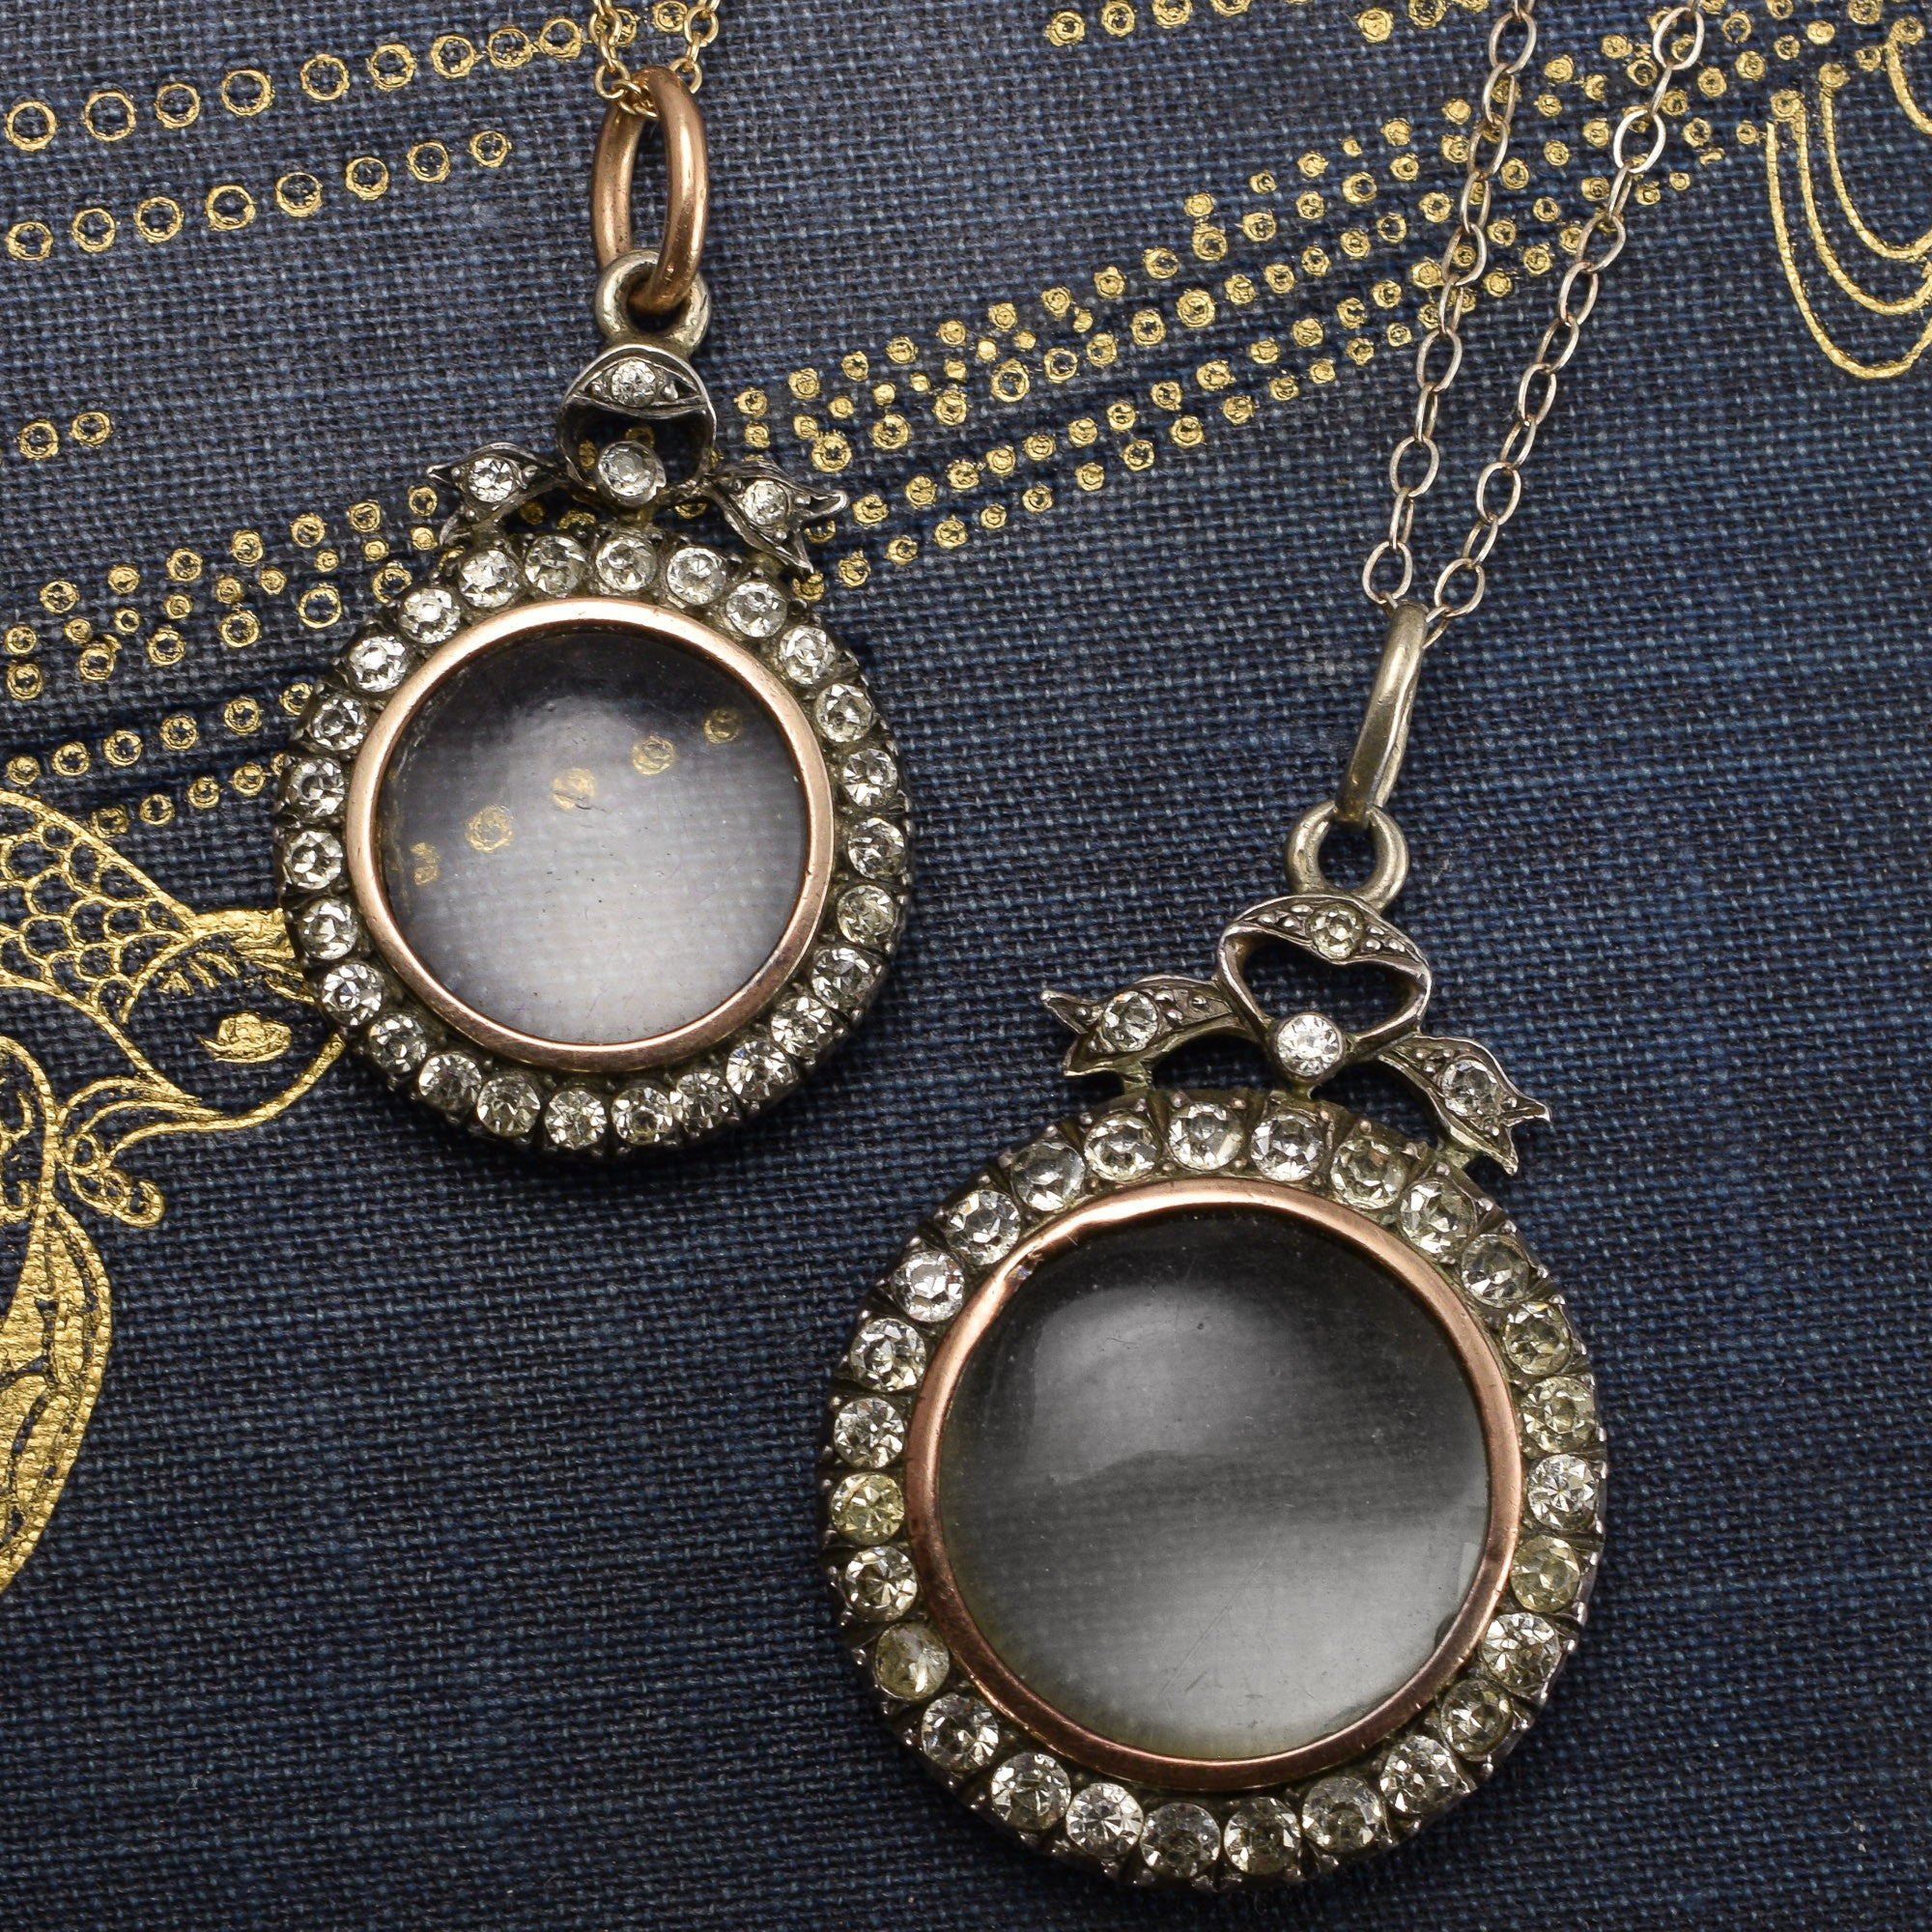 round gift necklace magic antique glow luminous glowing bronze vintage item dark steampunk in hollow from pendant locket the lockets necklaces